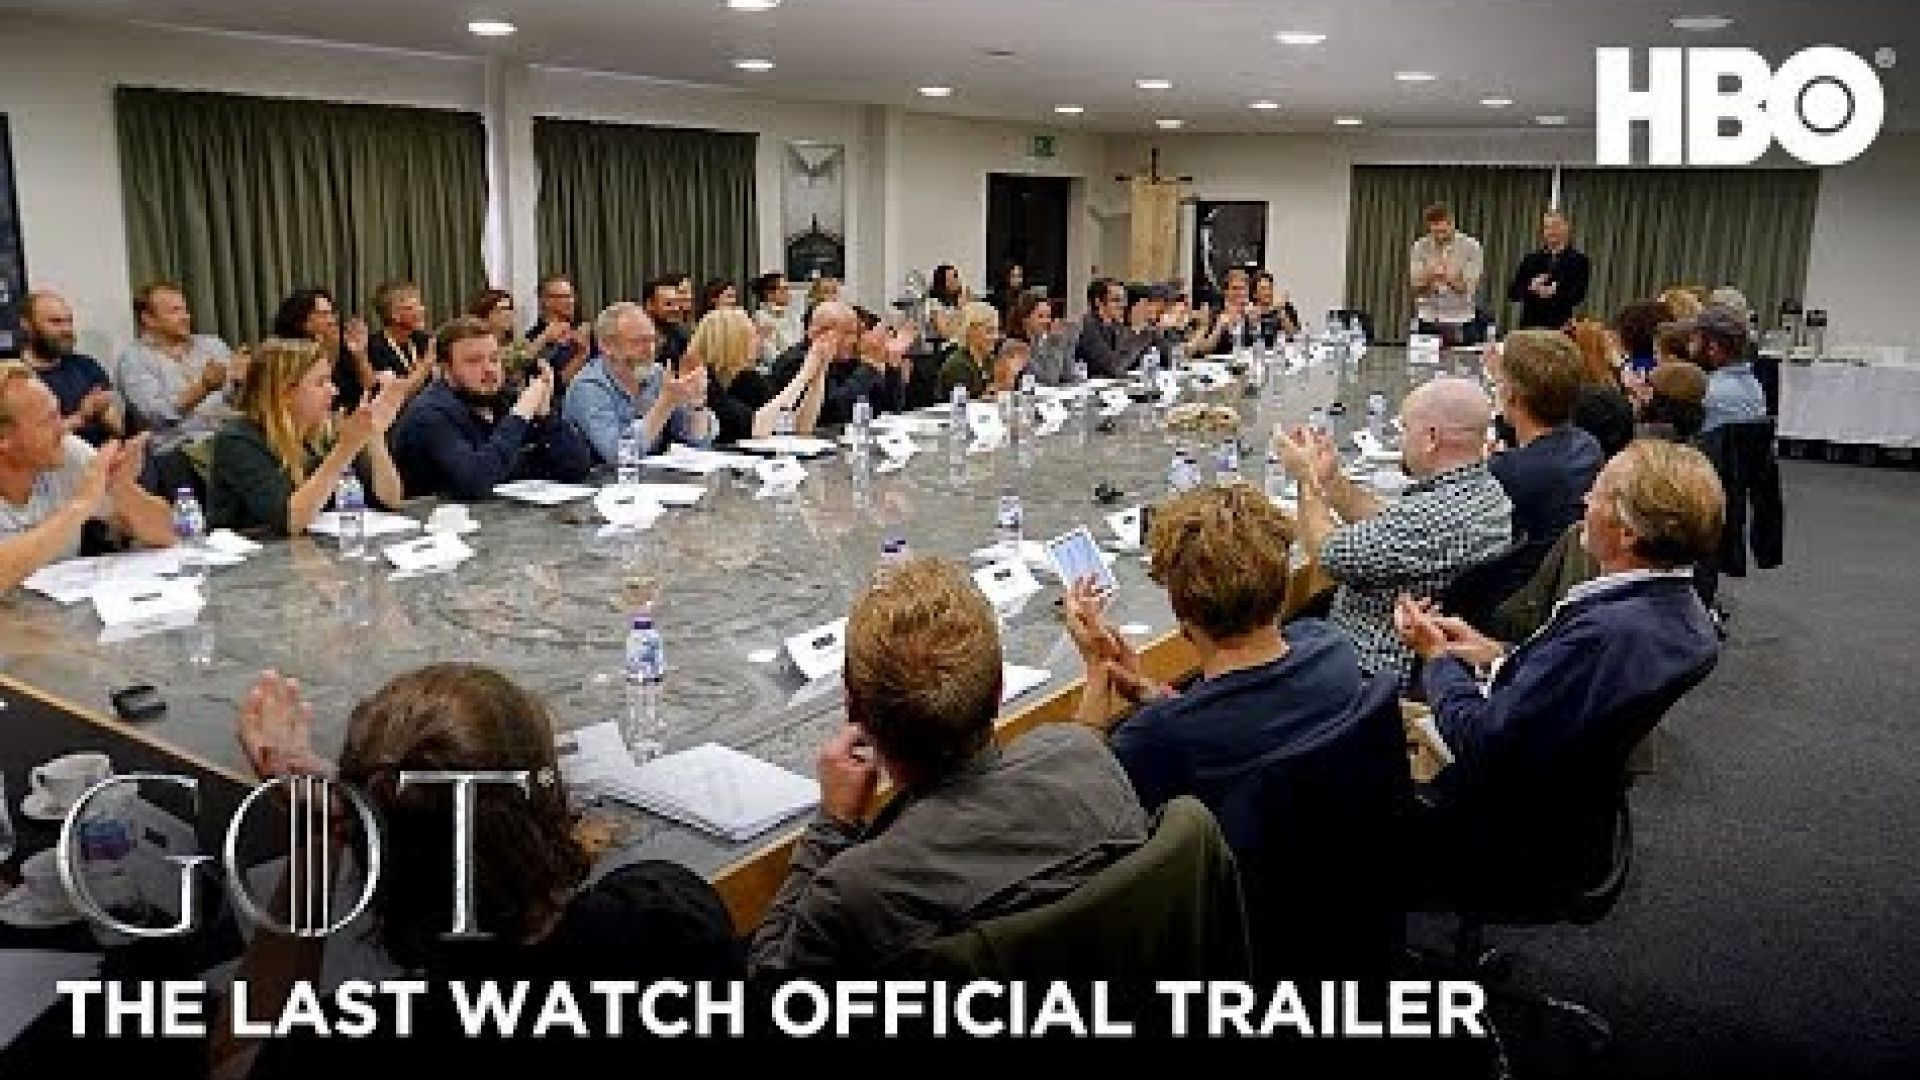 Game of Thrones: The Last Watch Documentary Trailer